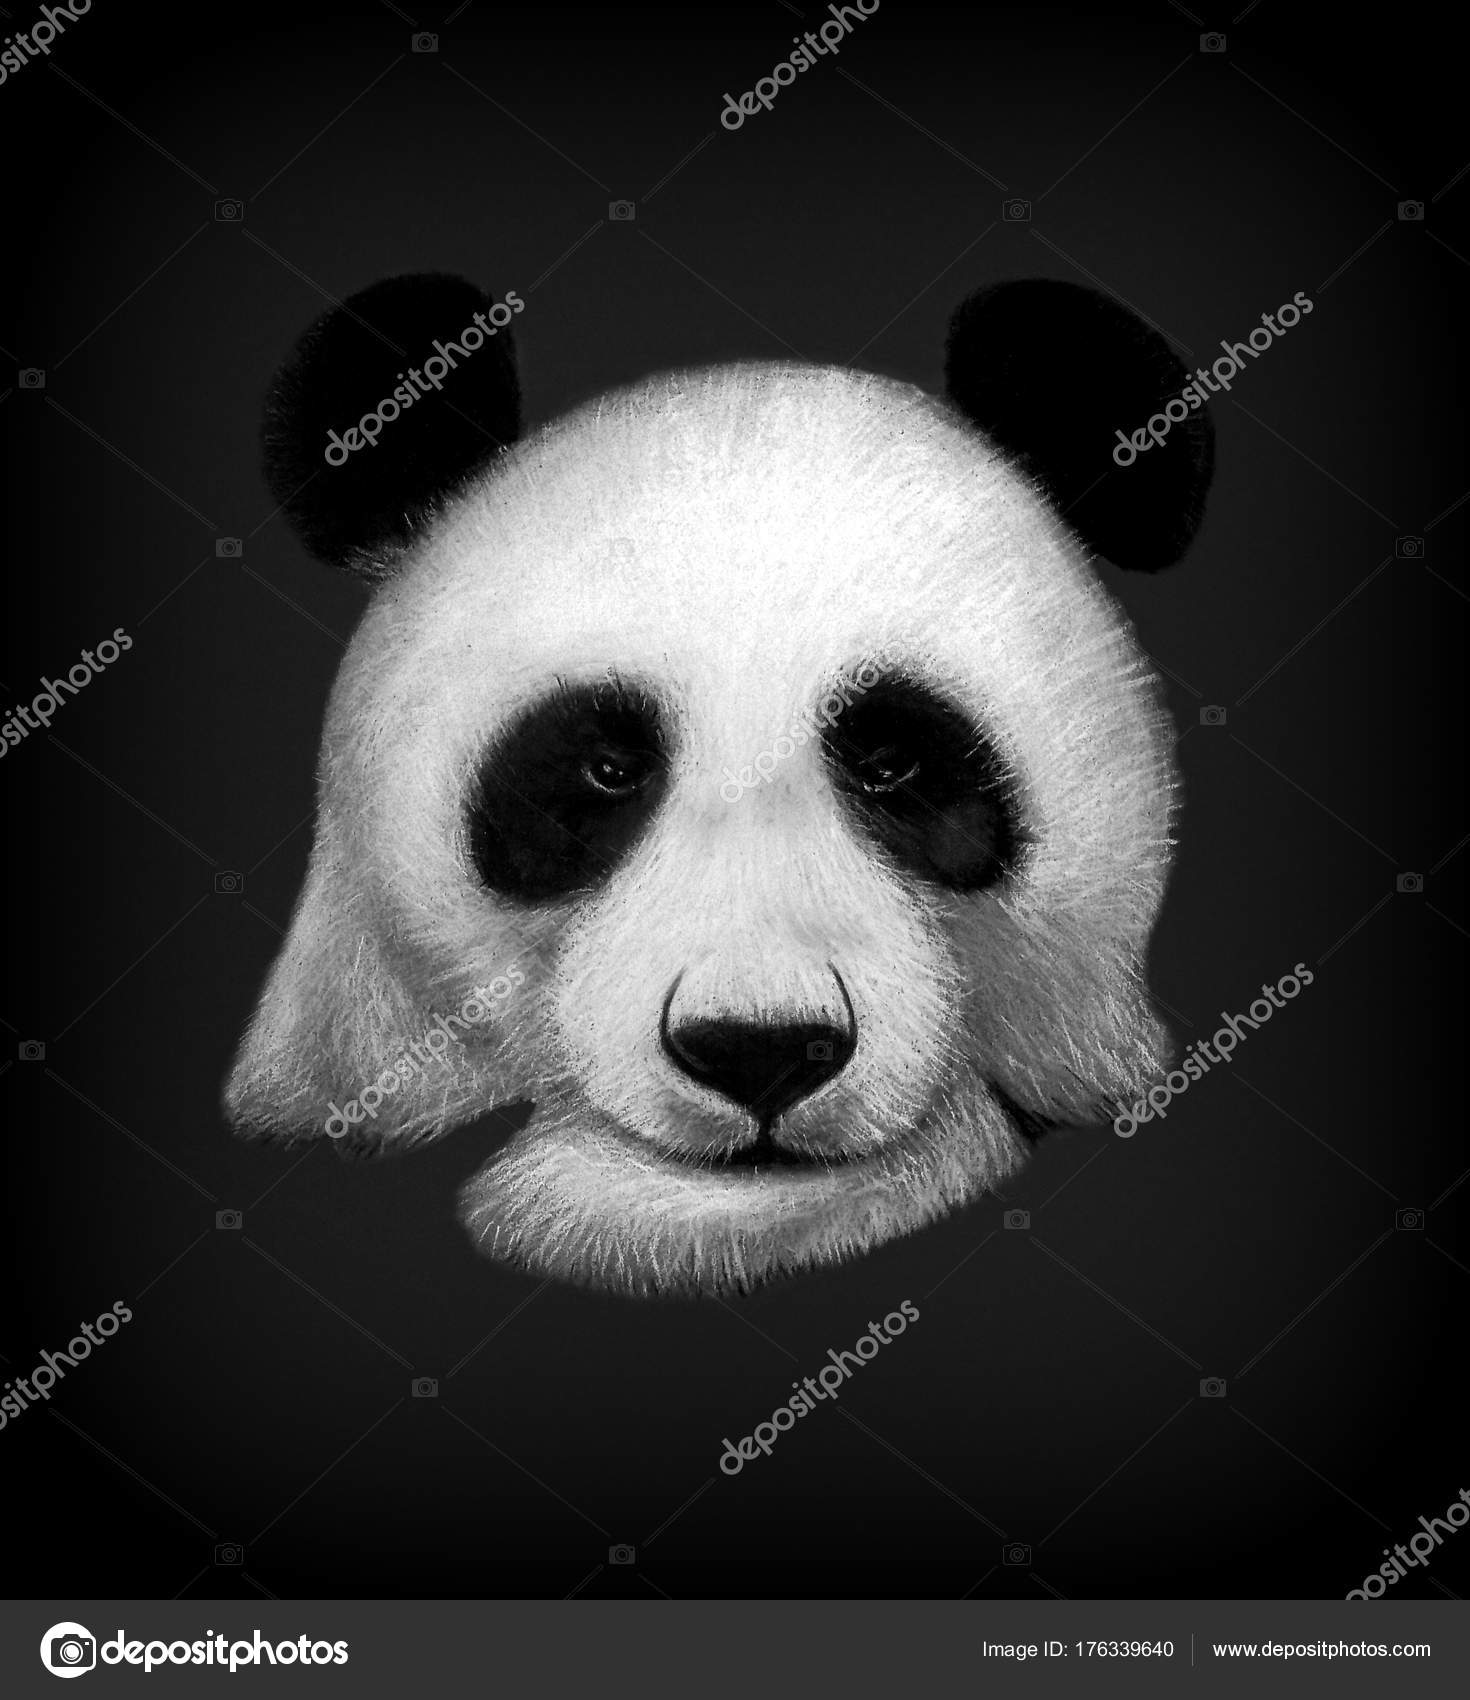 Hand drawn panda bear portrait isolated on black background colored pencils and pastel drawing animals illustration for interiors photo by